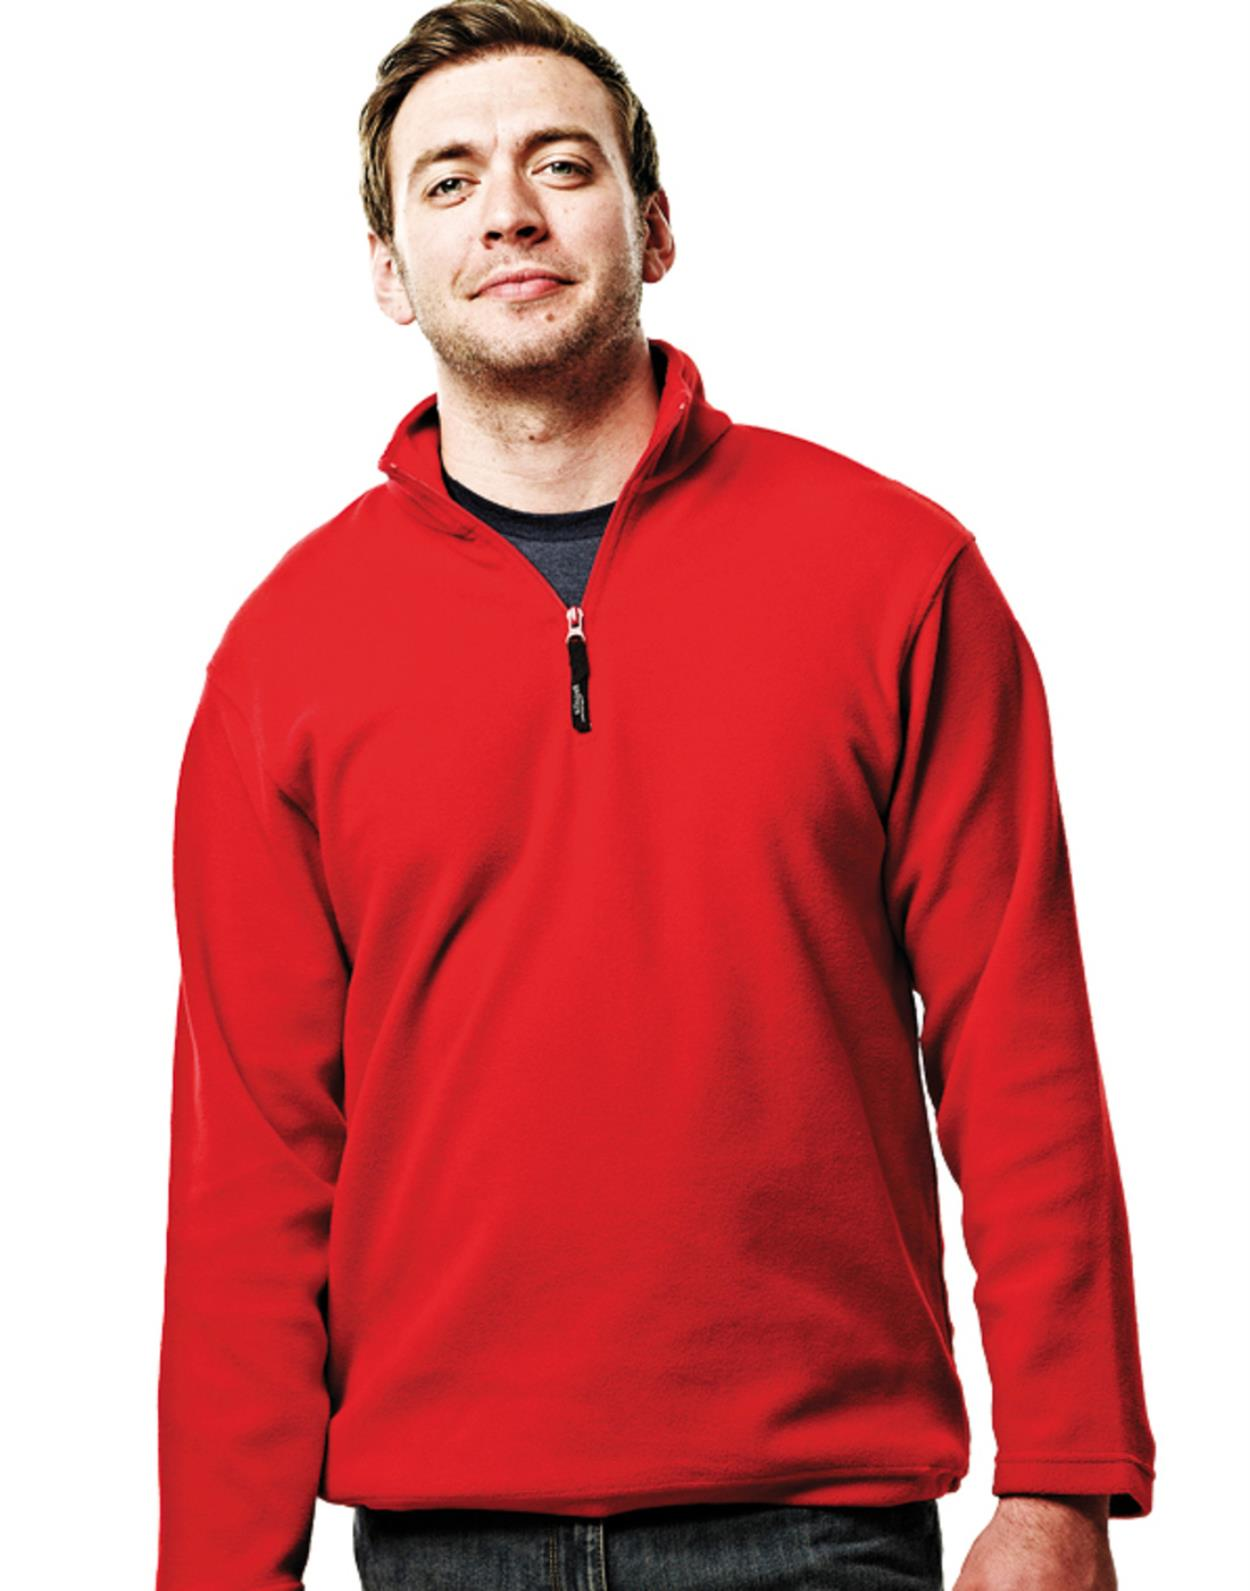 RG134 - Micro Zip Neck Fleece